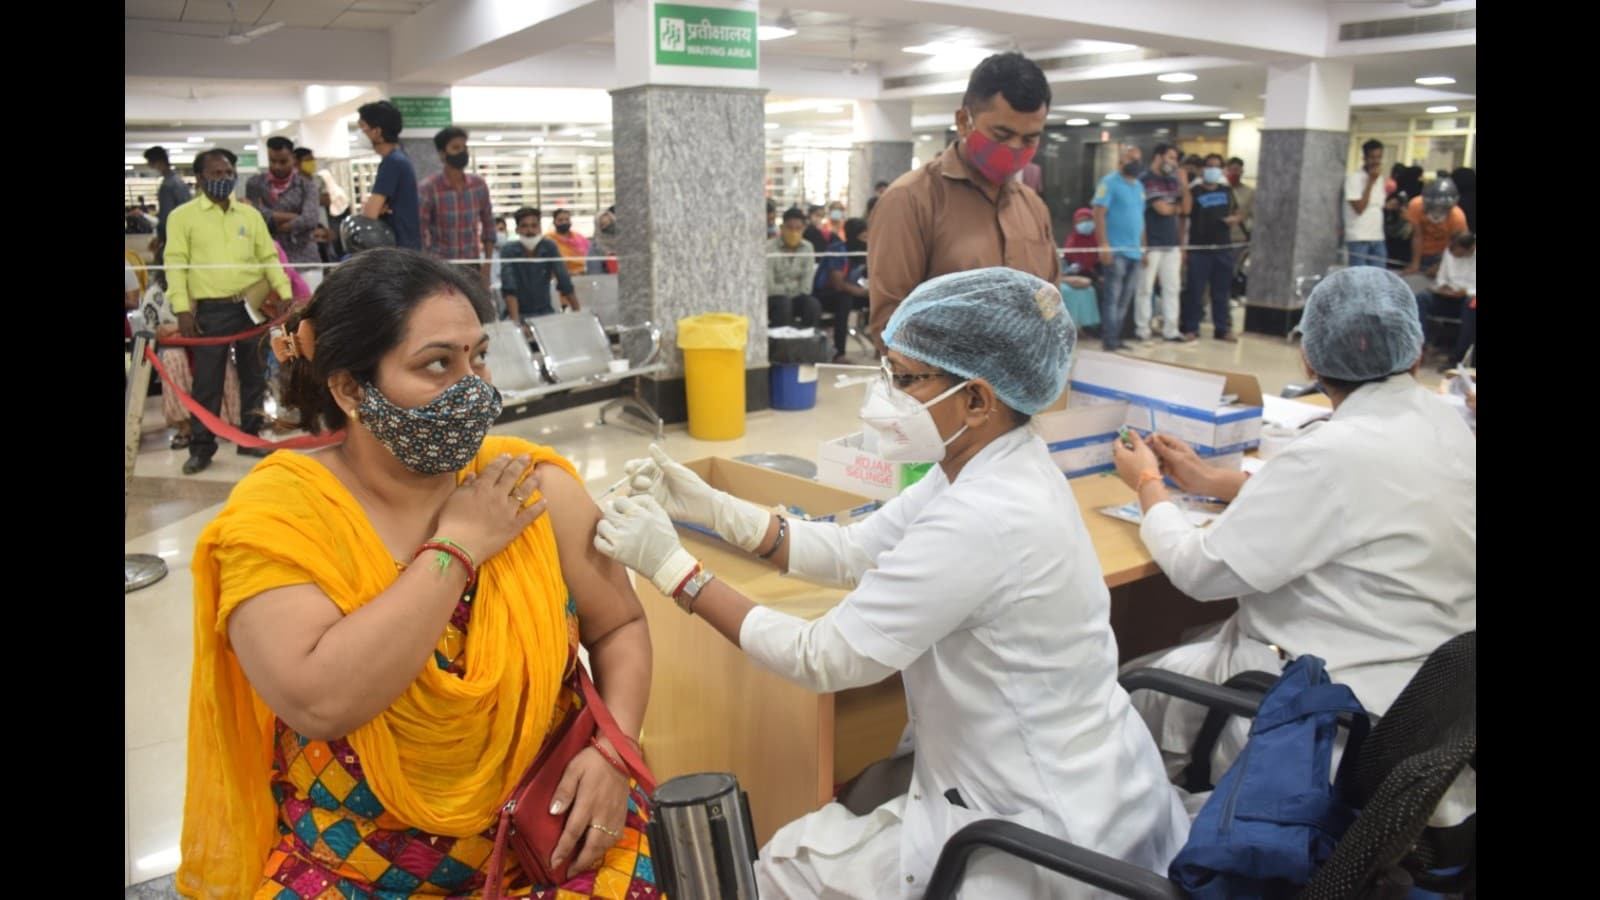 Covid vaccination: Over 36% eligible people get both doses in Lucknow